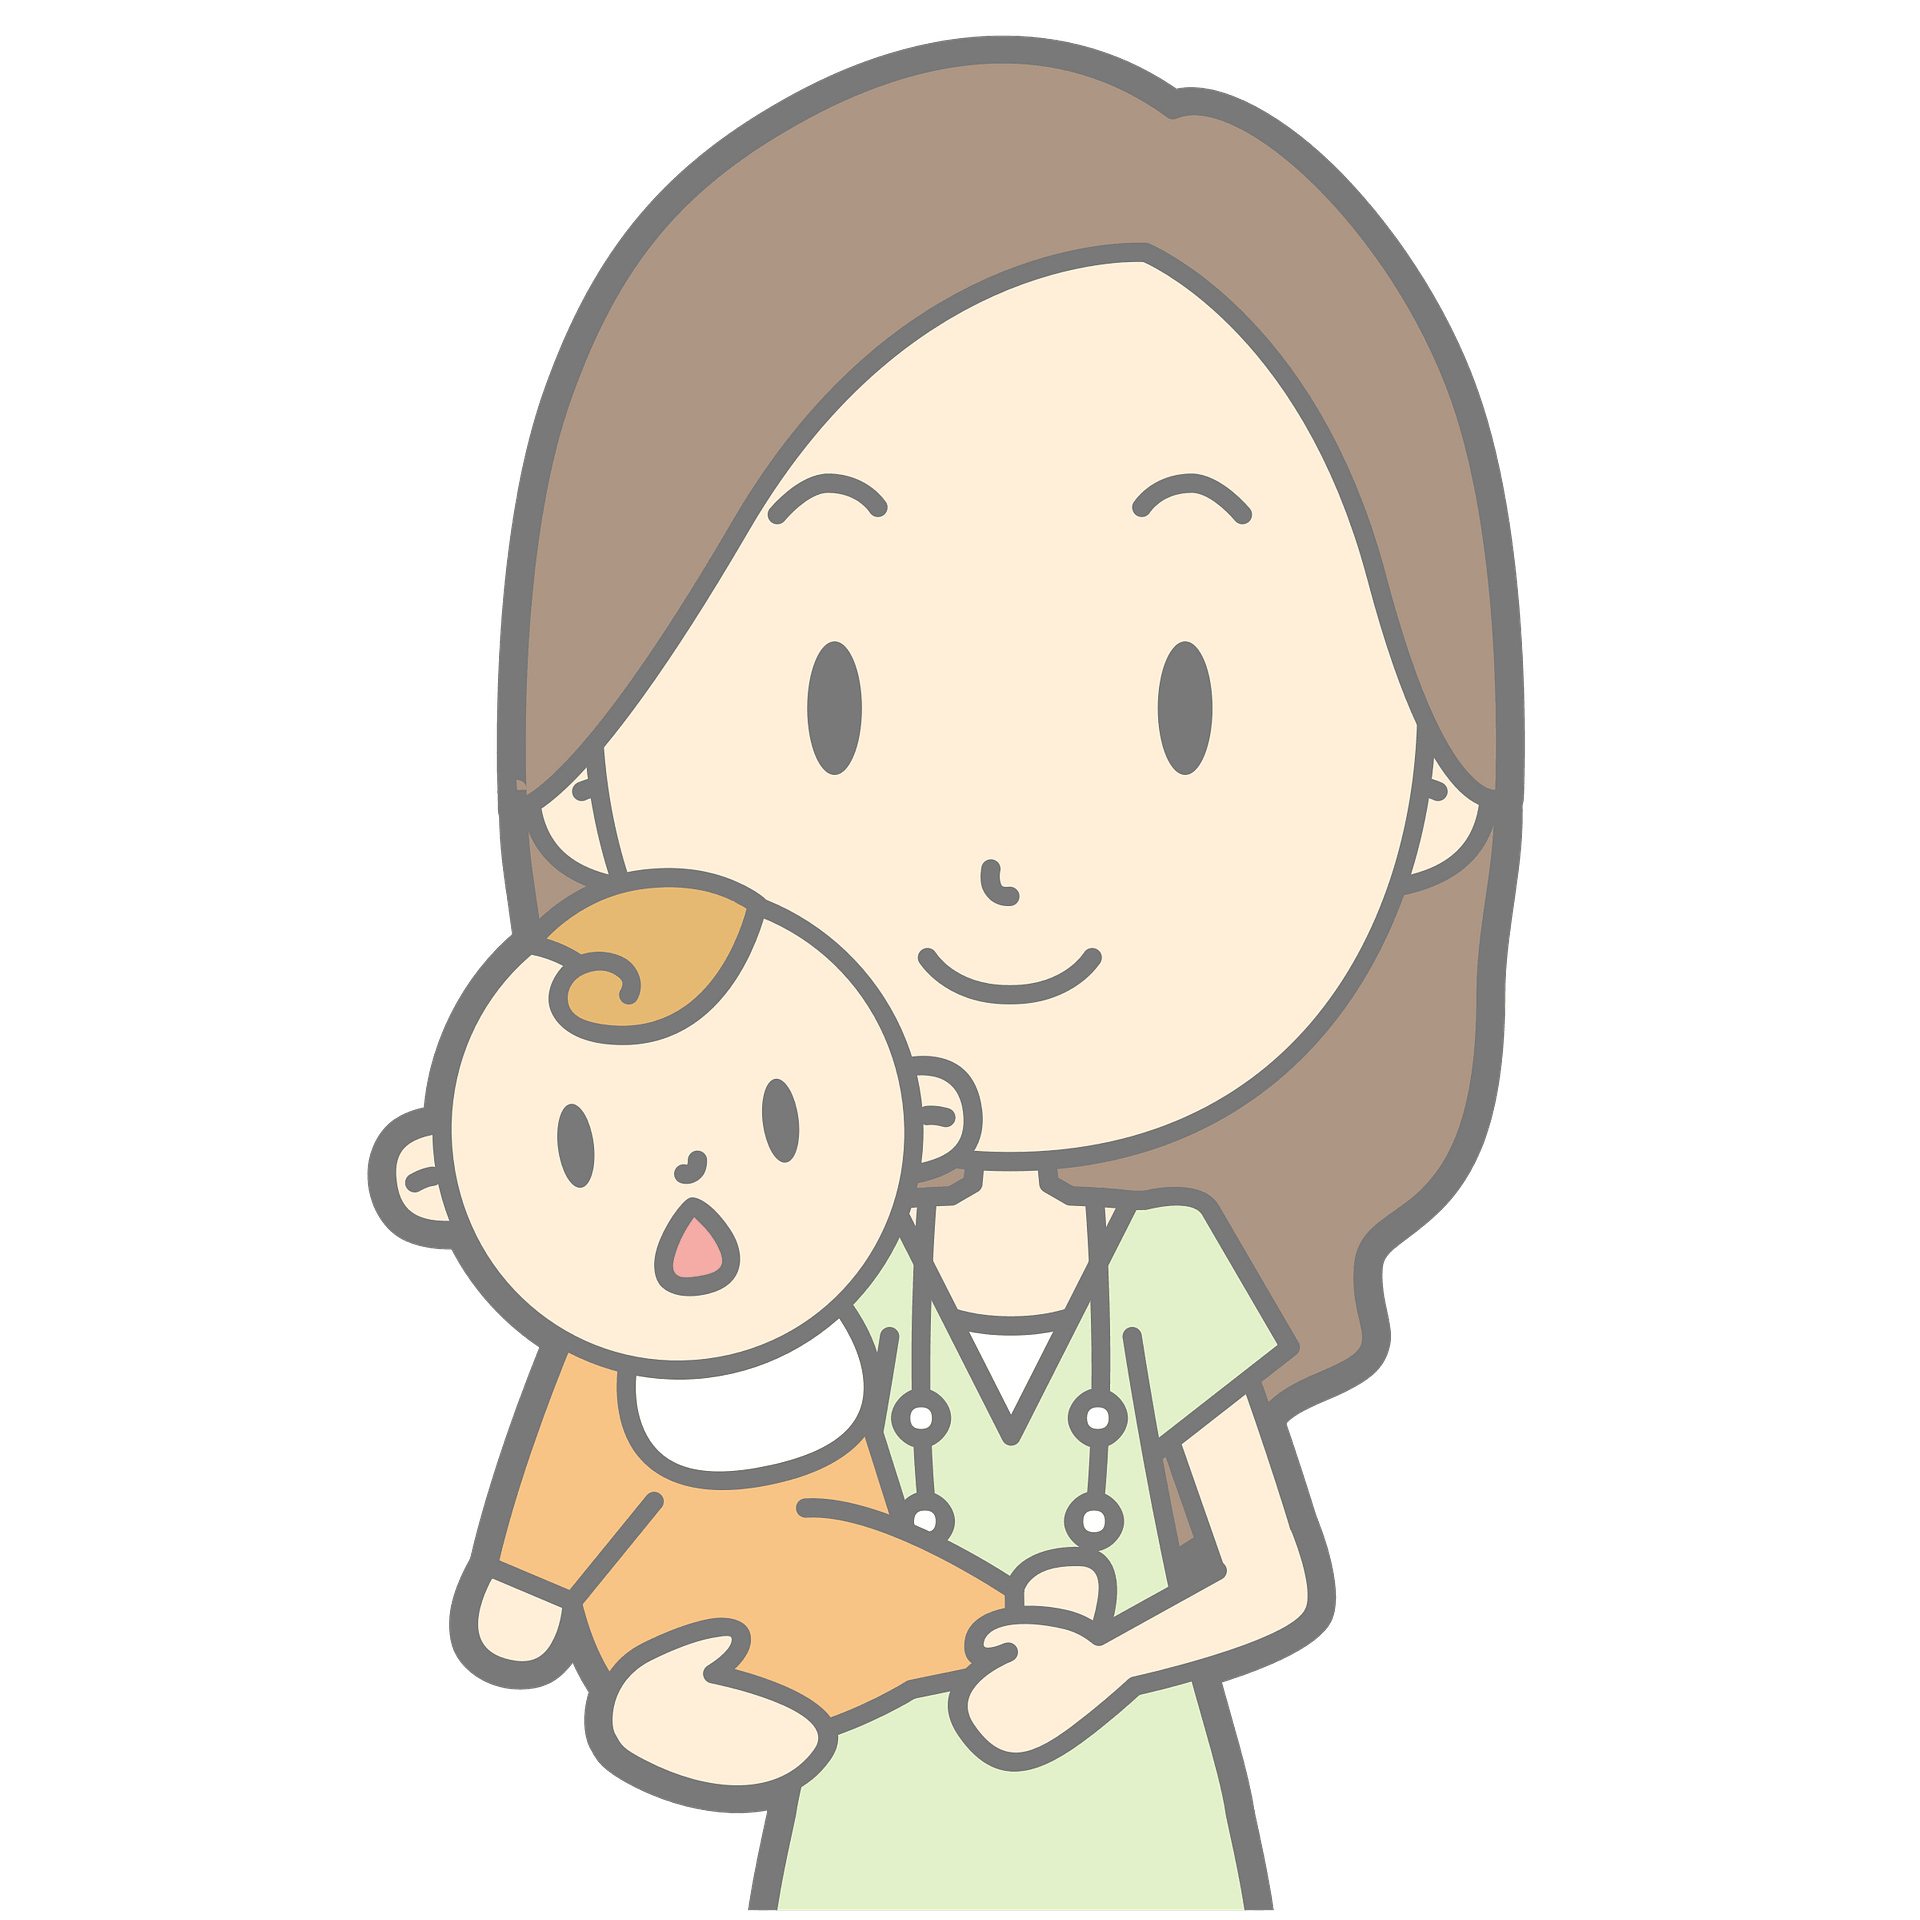 Mommy Holding Baby Clipart Free Download Transparent Png Creazilla